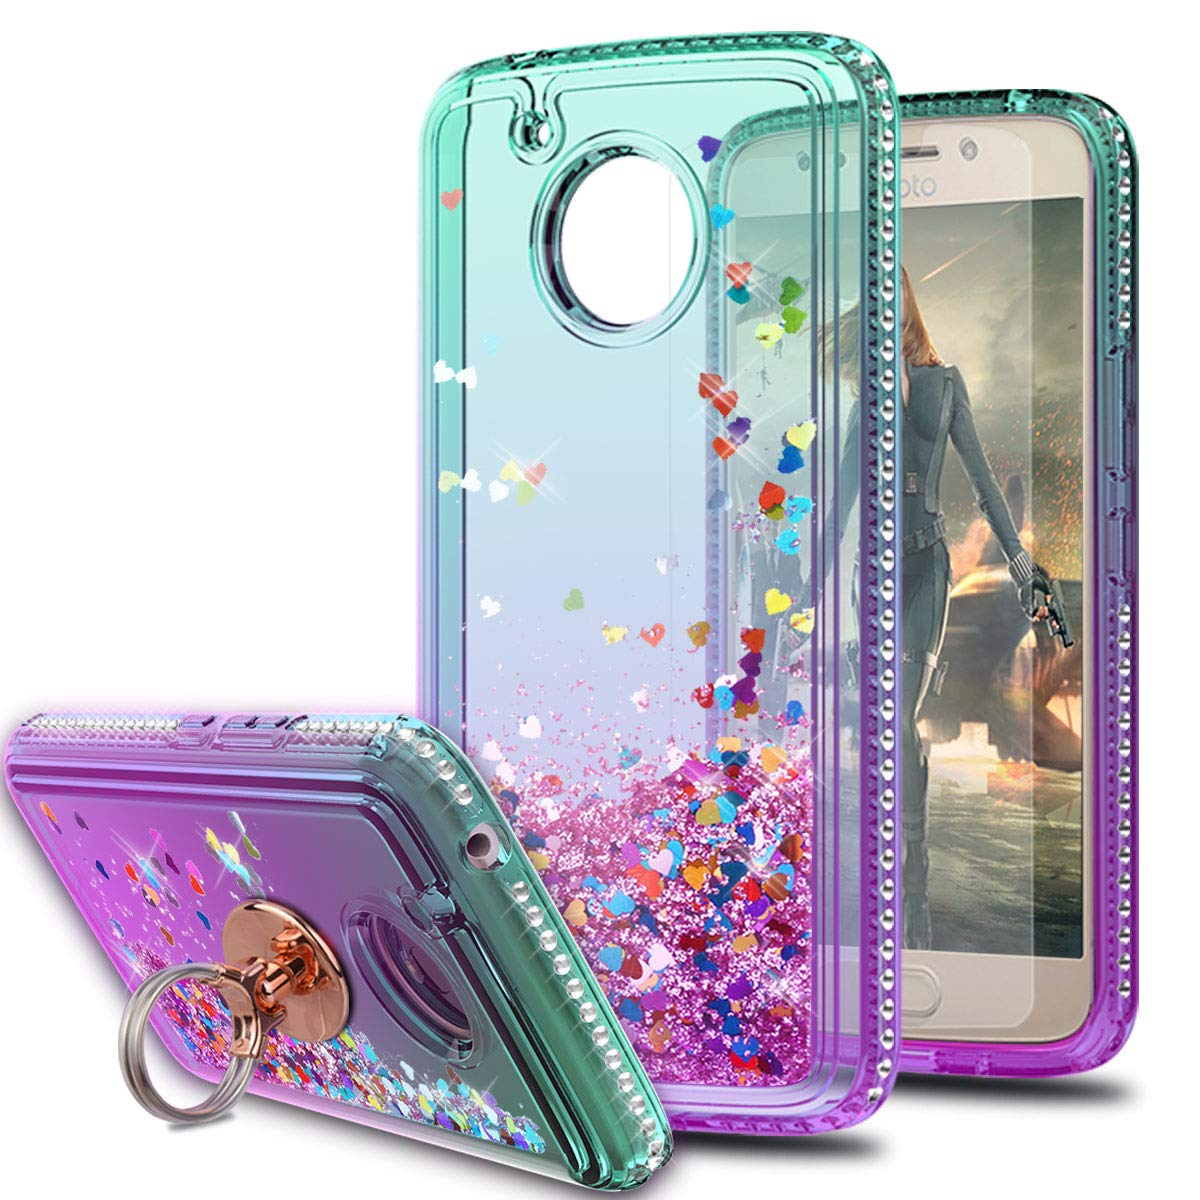 Moto E4 Plus (Not Fit Moto E4) Case with HD Screen Protector with Ring Holder,KaiMai Glitter Moving Quicksand Clear Cute Shiny Girls Women Phone Case for Moto E Plus (4th Generation)-Aqua/Purple Ring by KaiMai